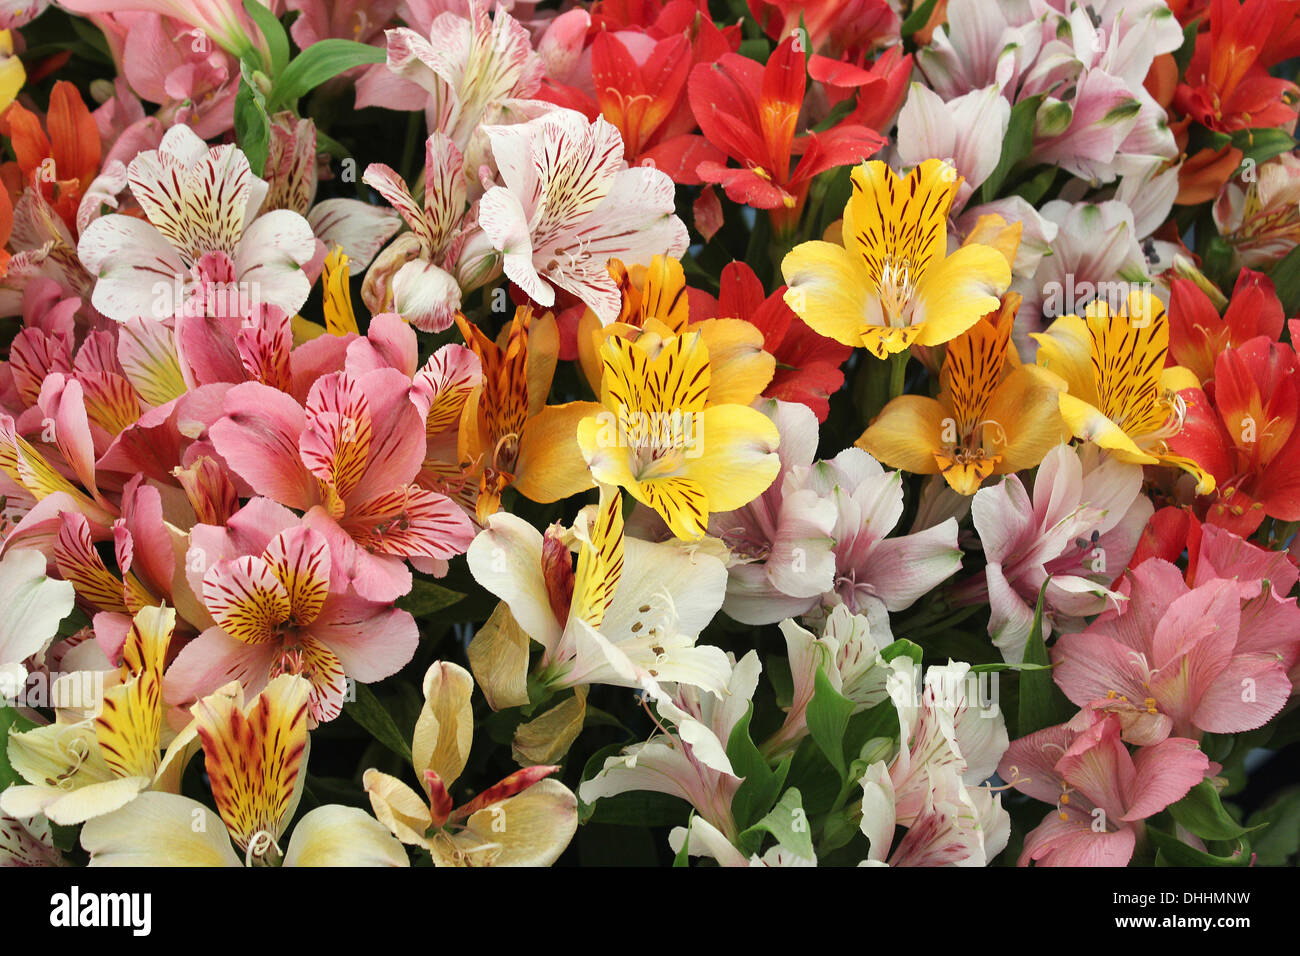 Multi Colored Flowers display - Stock Image